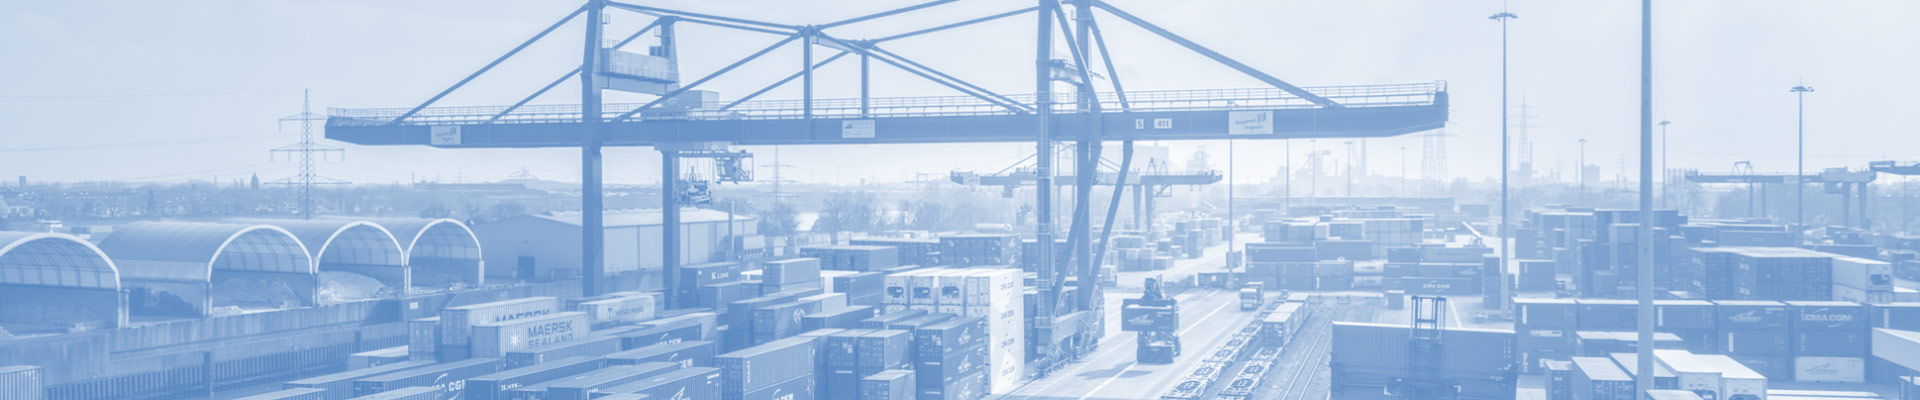 ONE Line container services for Bulgaria by Transterra Logistics